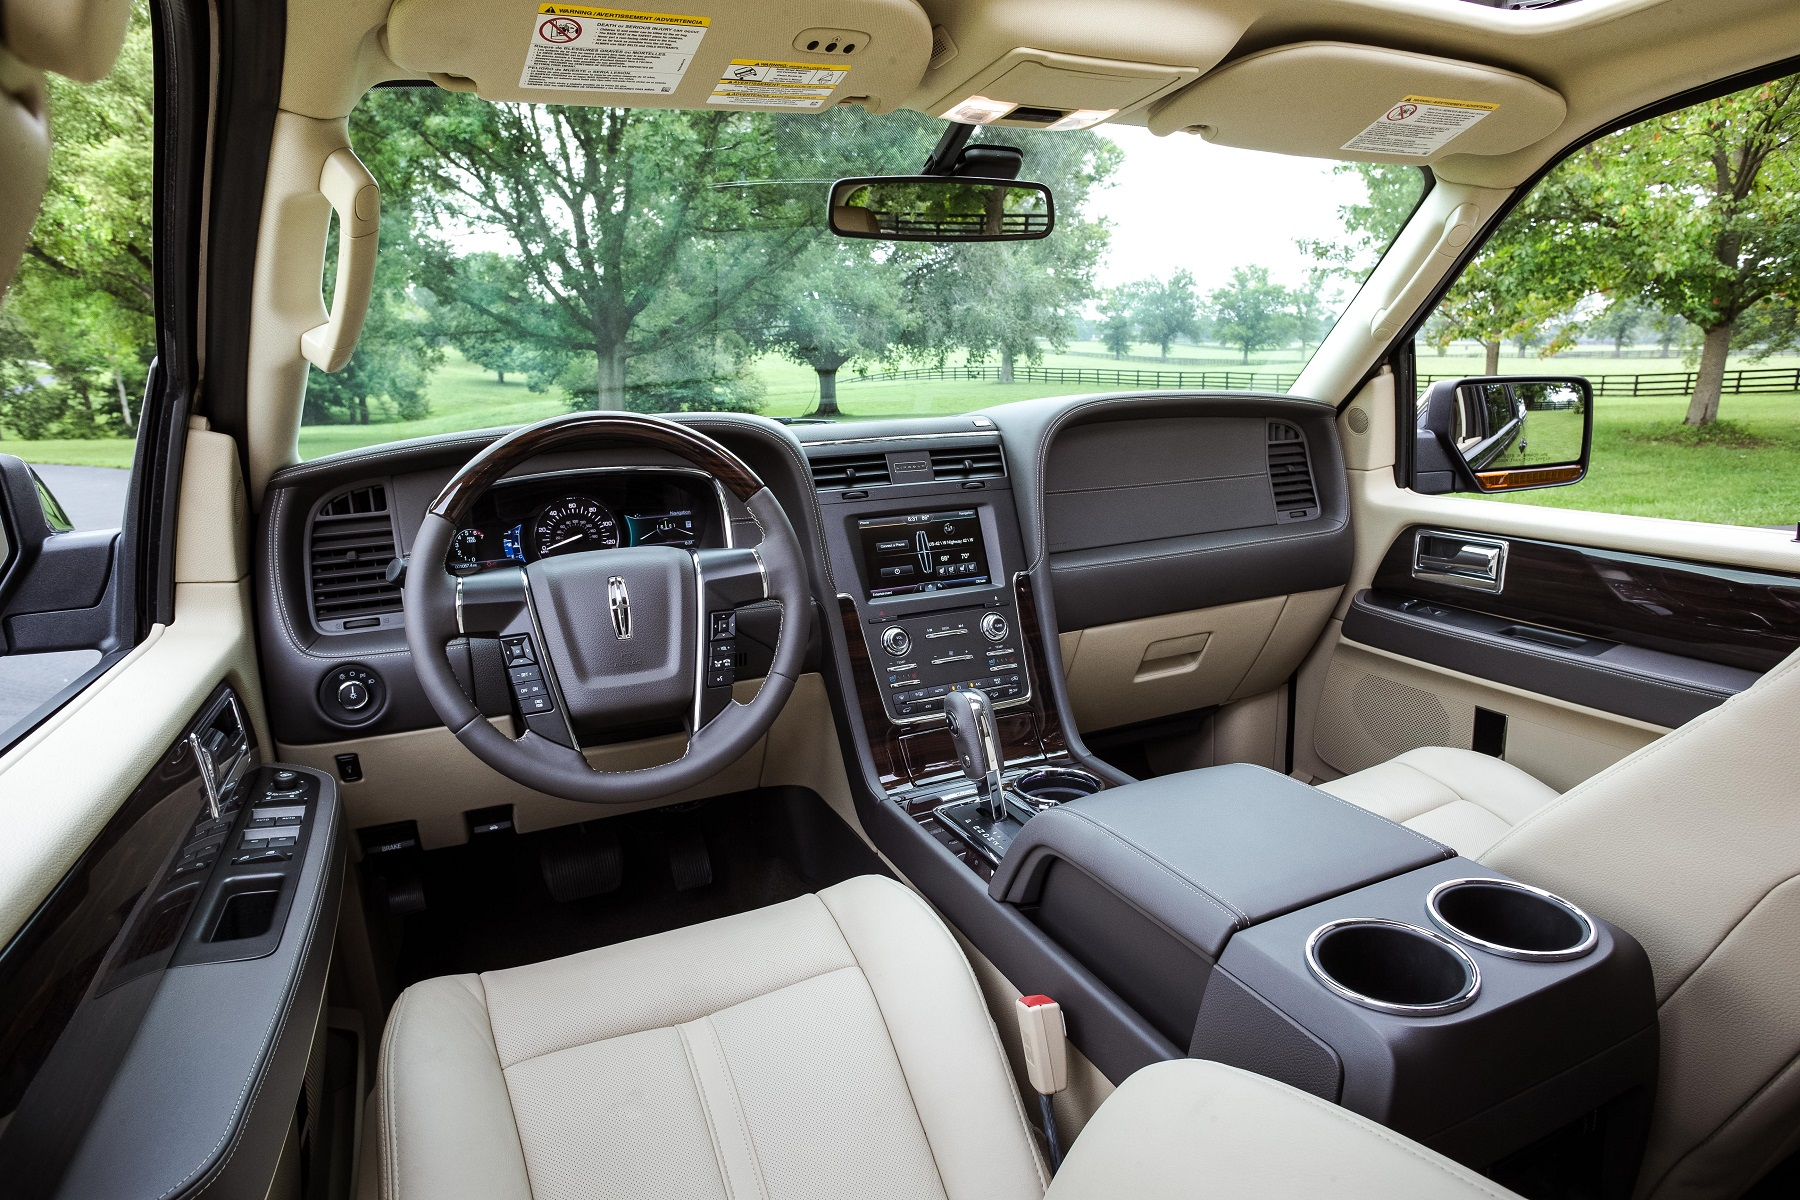 Manufacturer photo: The 2015 Lincoln Navigator offers a fresh interpretation of the classic vehicle that created the full-size luxury SUV segment